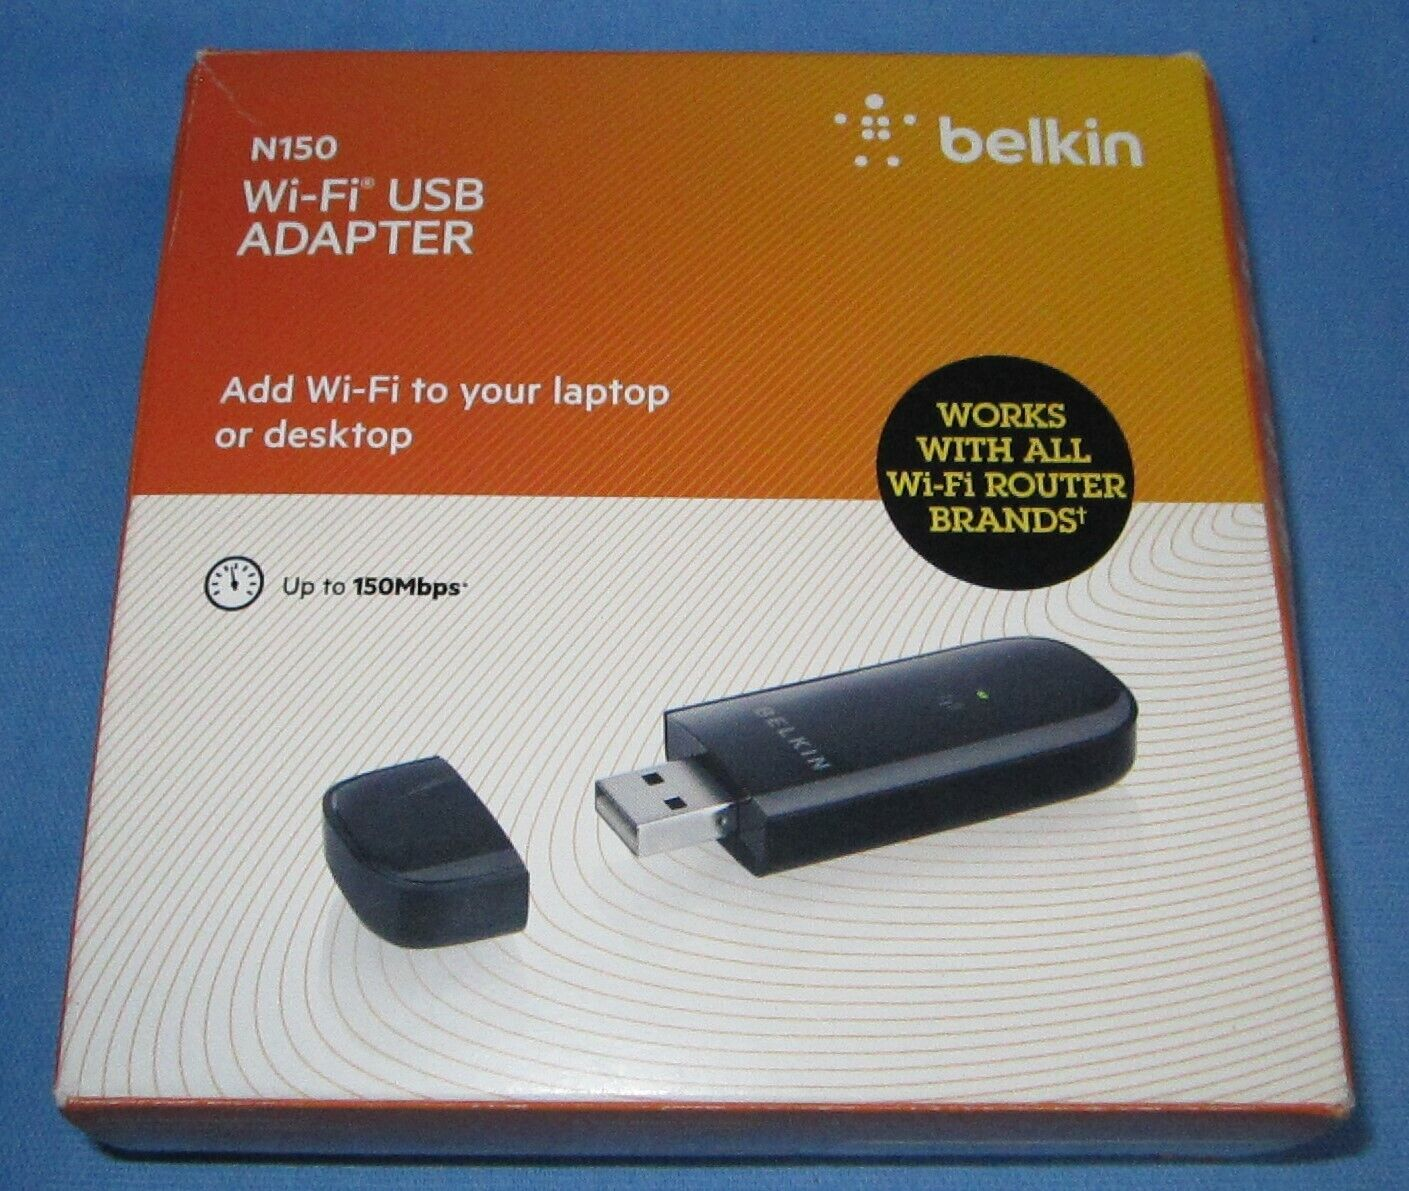 Belkin N150 Wi-Fi USB Adapter ... new in a rough box